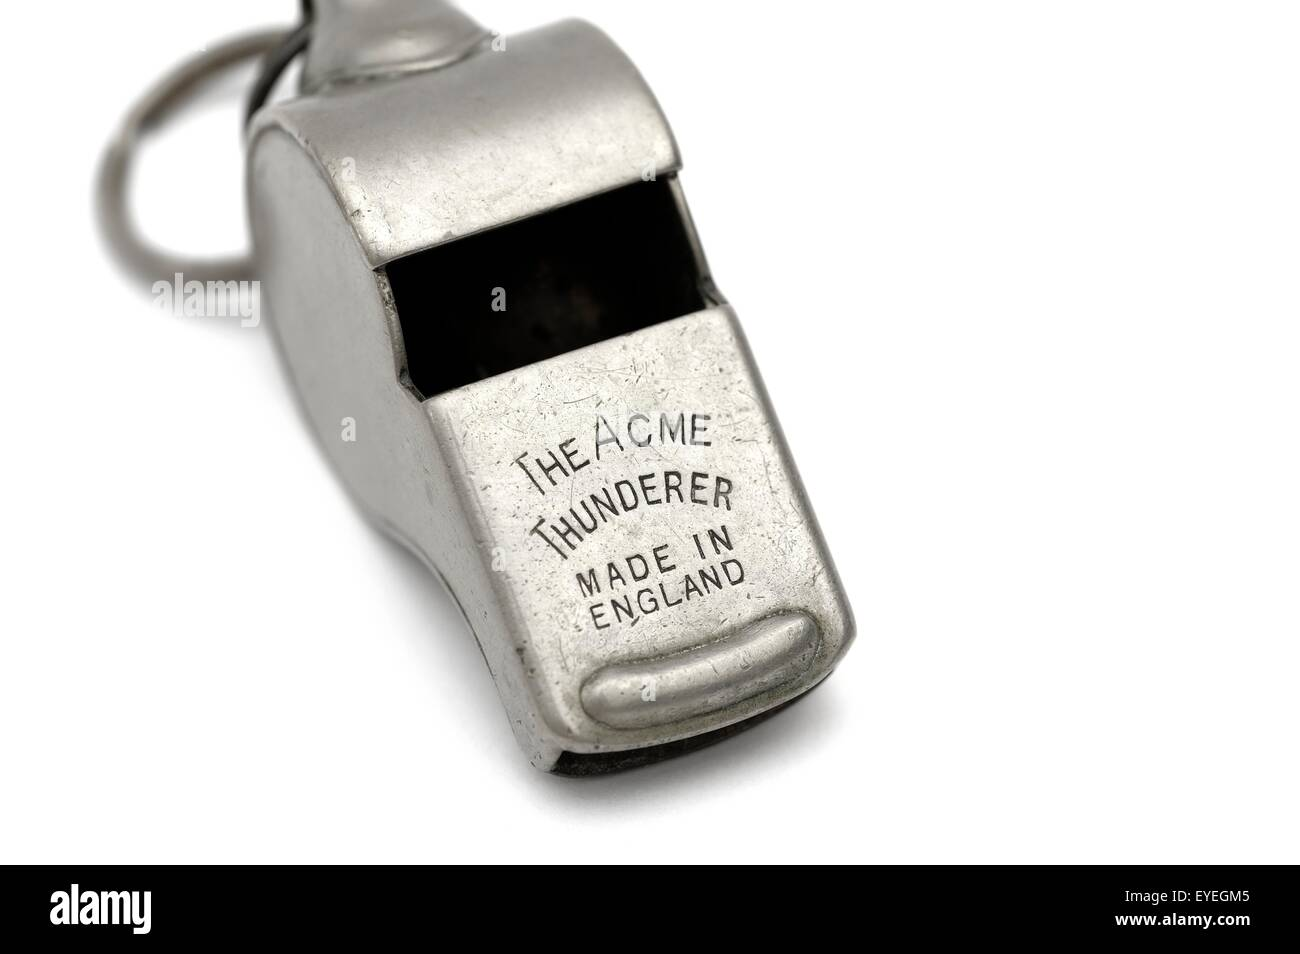 The acme thunderer whistle made in England. - Stock Image